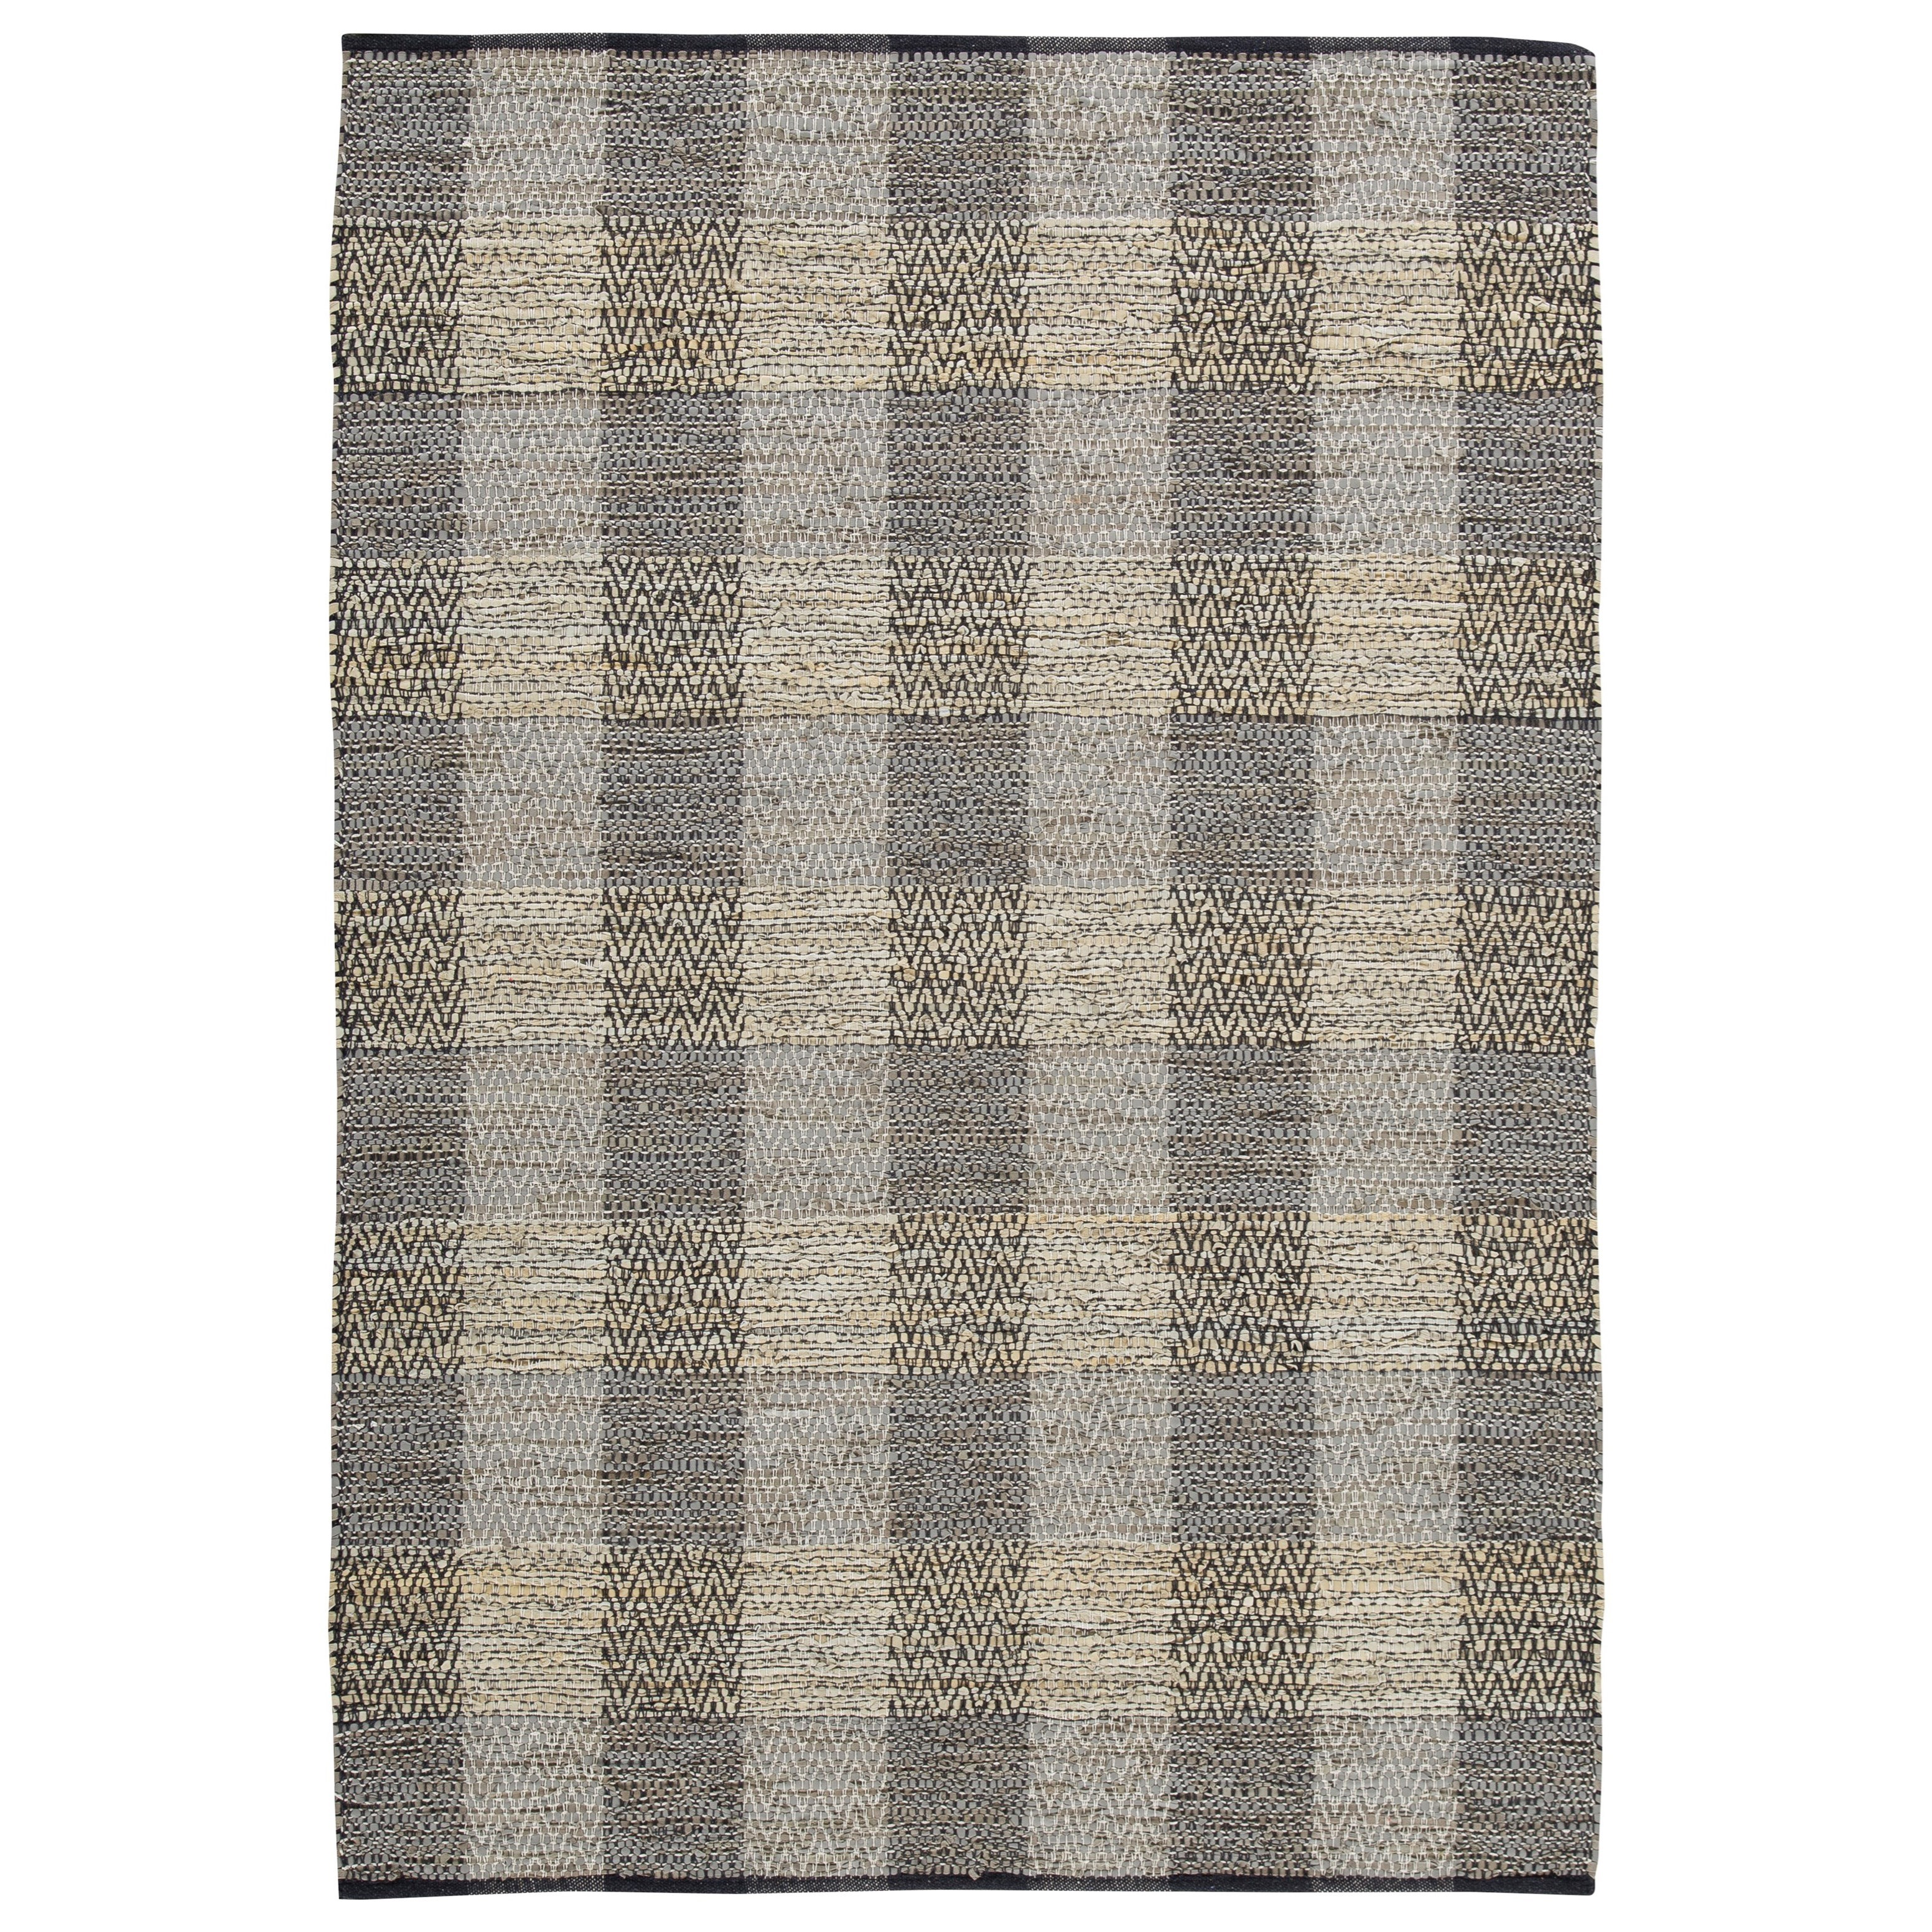 Casual Area Rugs Christoff Taupe/Black Medium Rug by Signature at Walker's Furniture